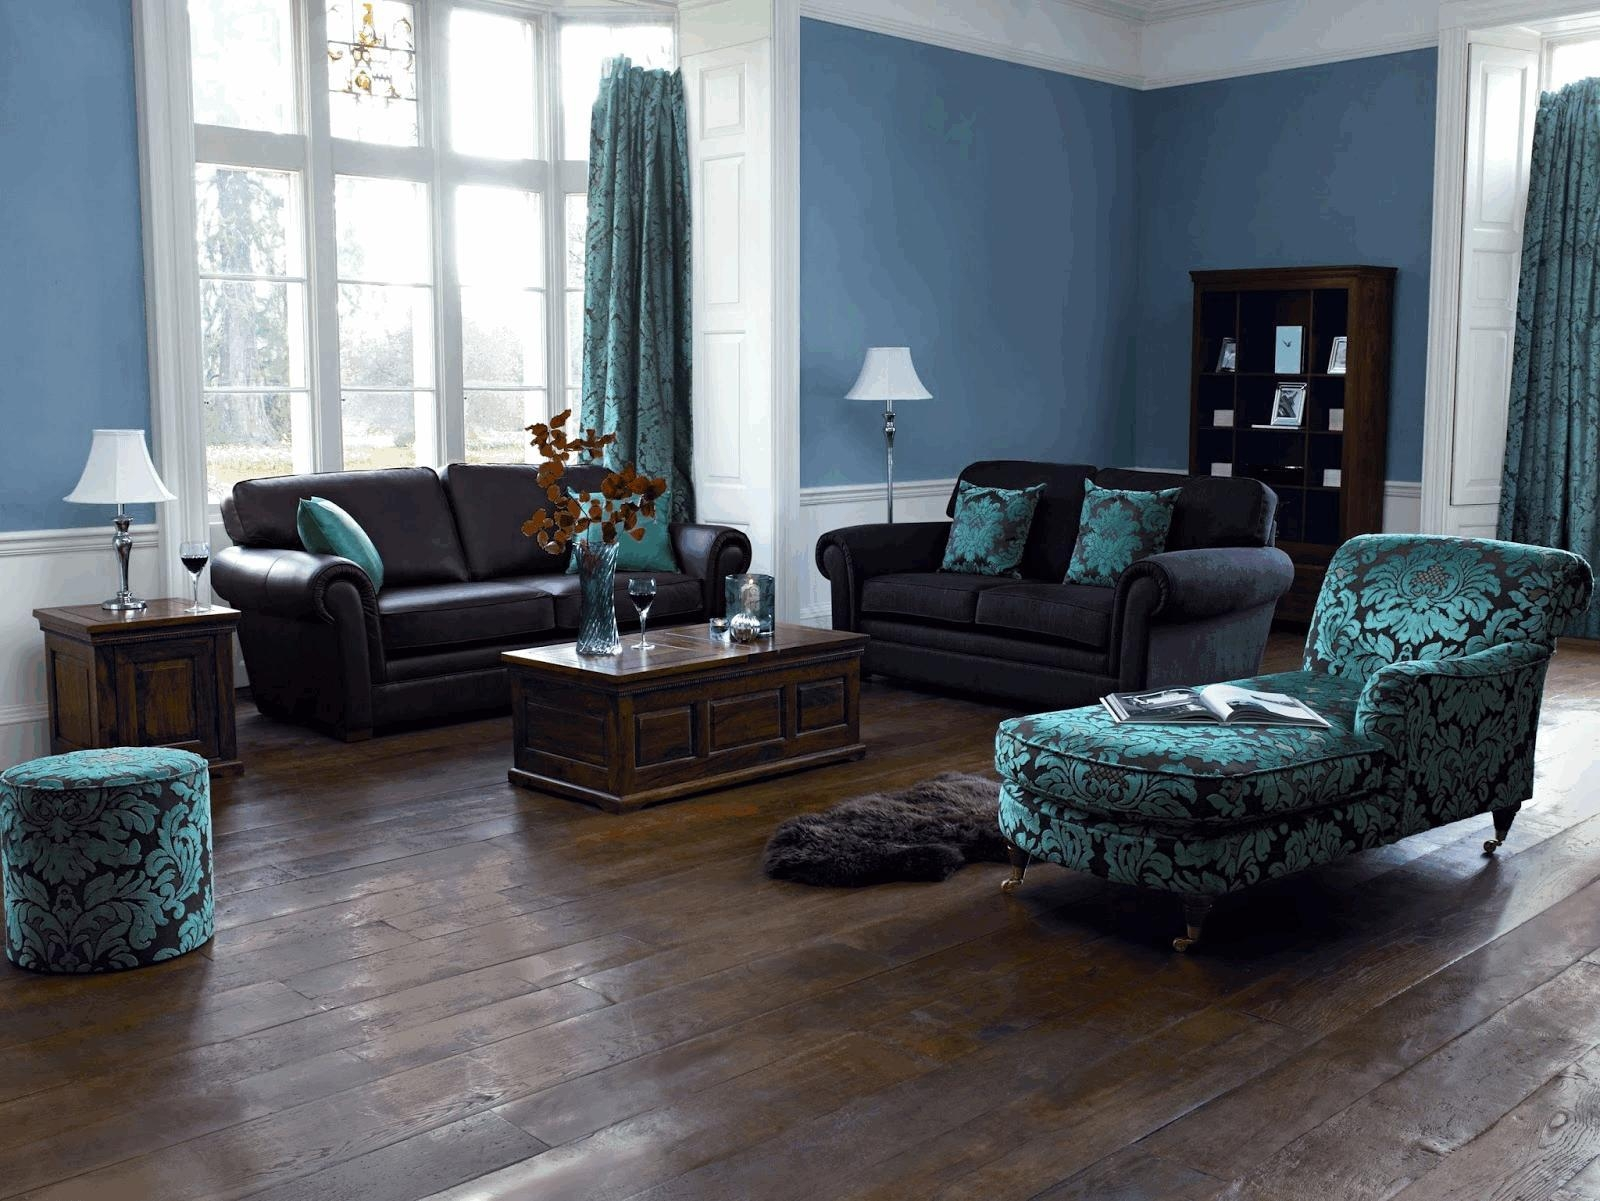 Brown And Blue Room Ideas Mirror Wrought Iron Wall Decor Dark Pertaining To Tuscan Wrought Iron Wall Art (Image 2 of 20)